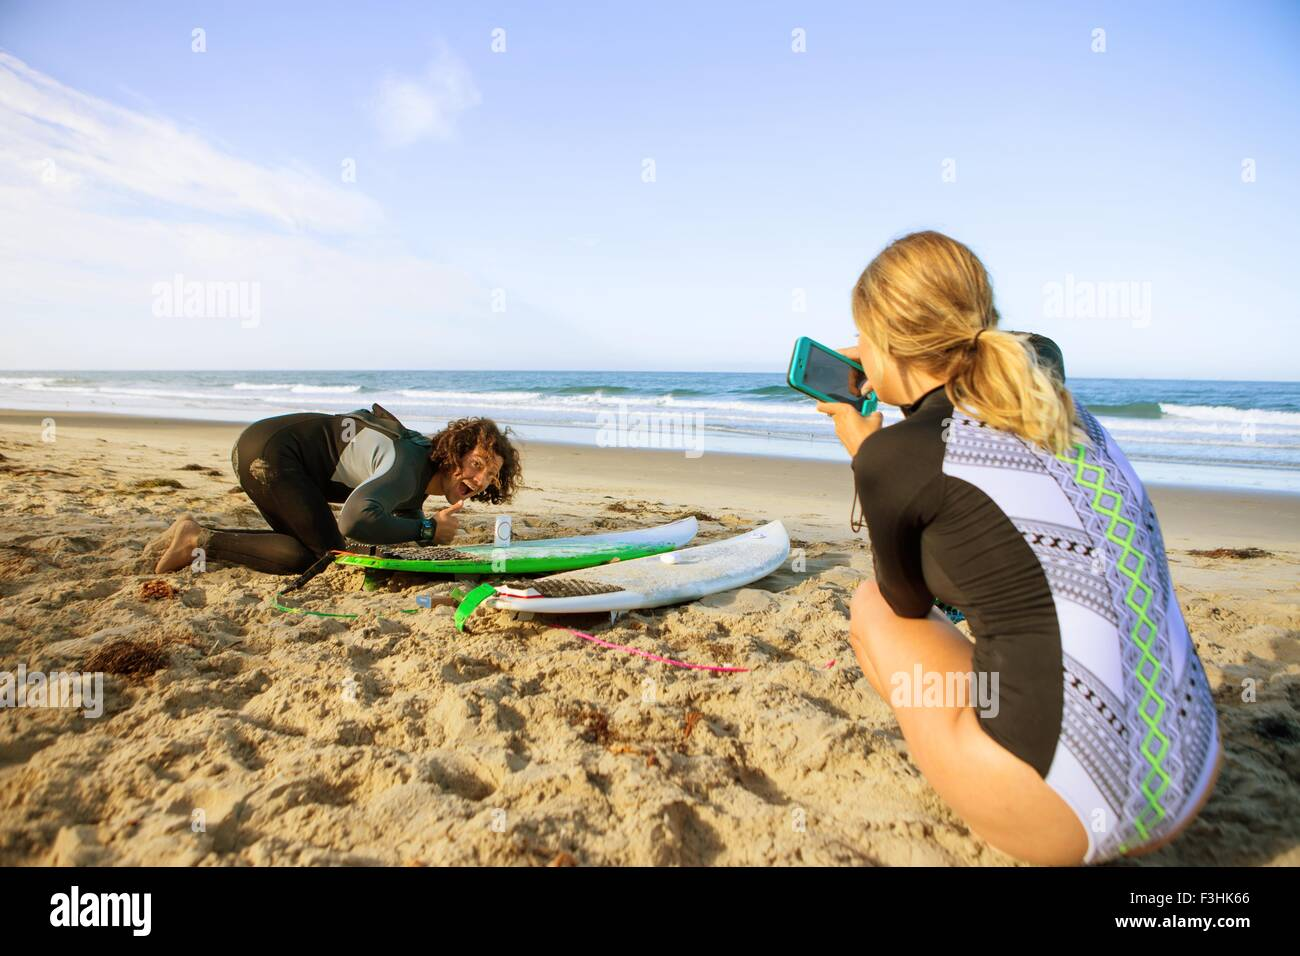 Couple on beach, young woman taking photograph of man with surfboard Banque D'Images